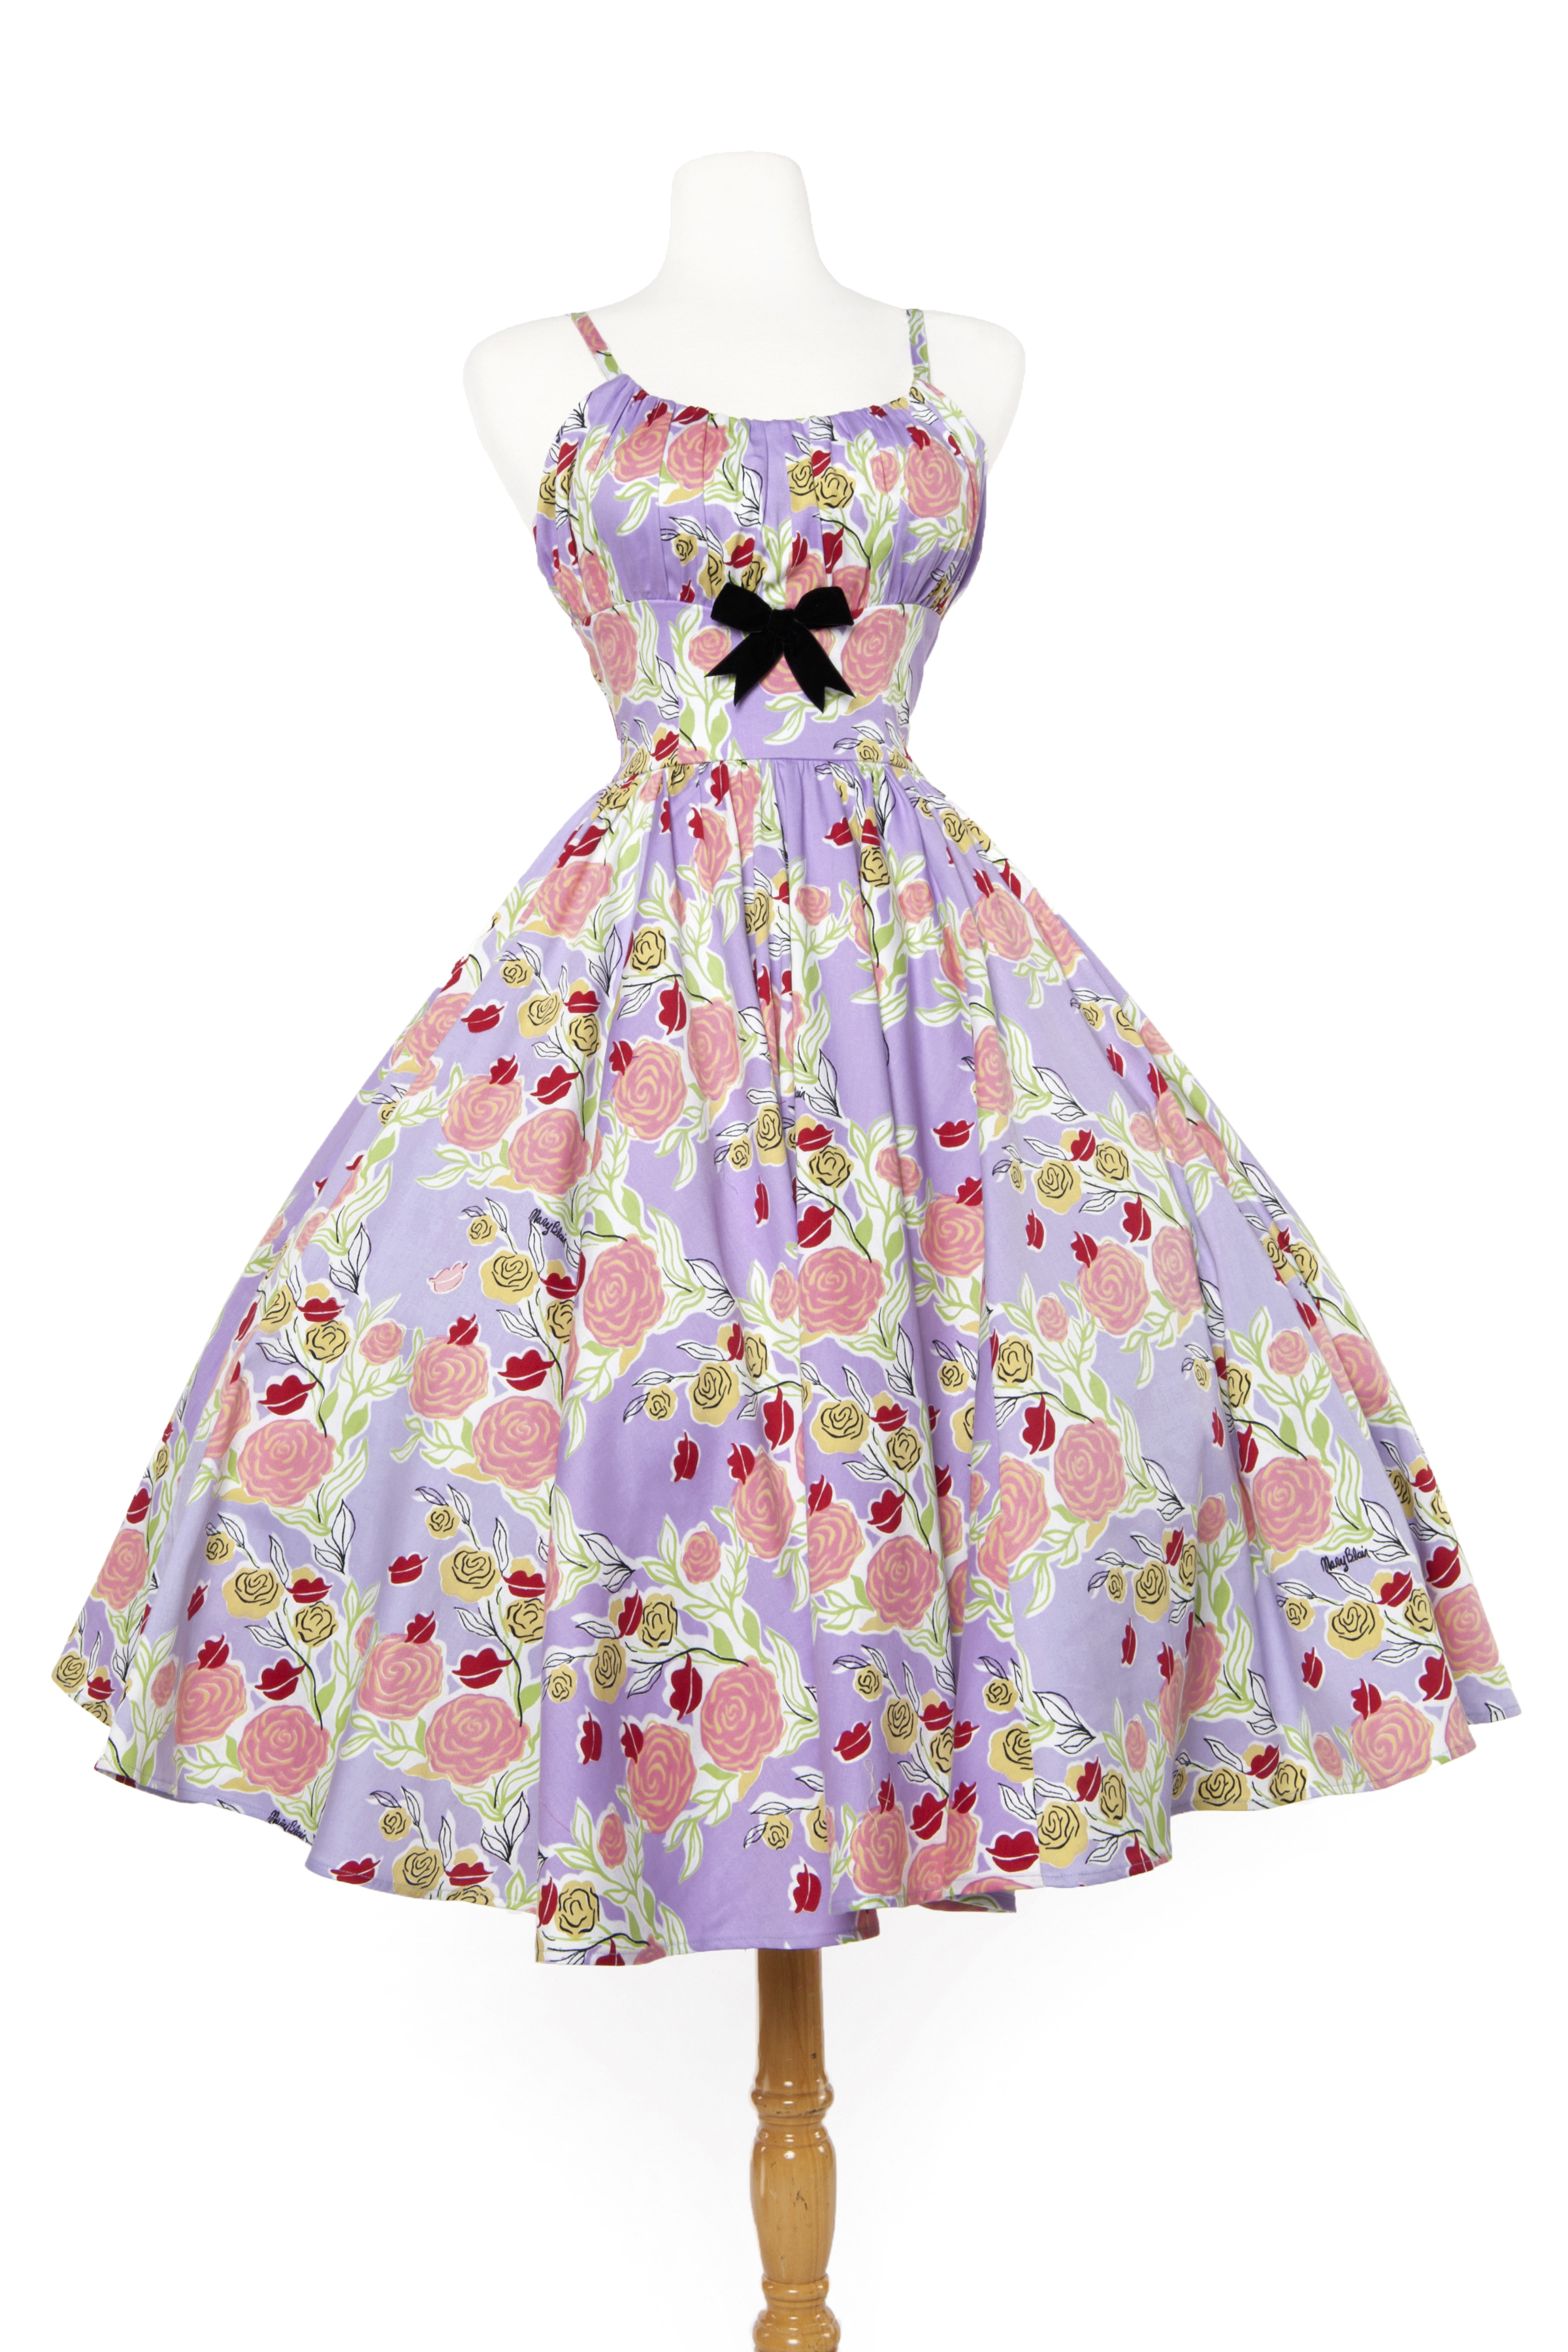 Pinup Girl Clothing Announces The Magic of Mary Blair Collection by Pinup Couture